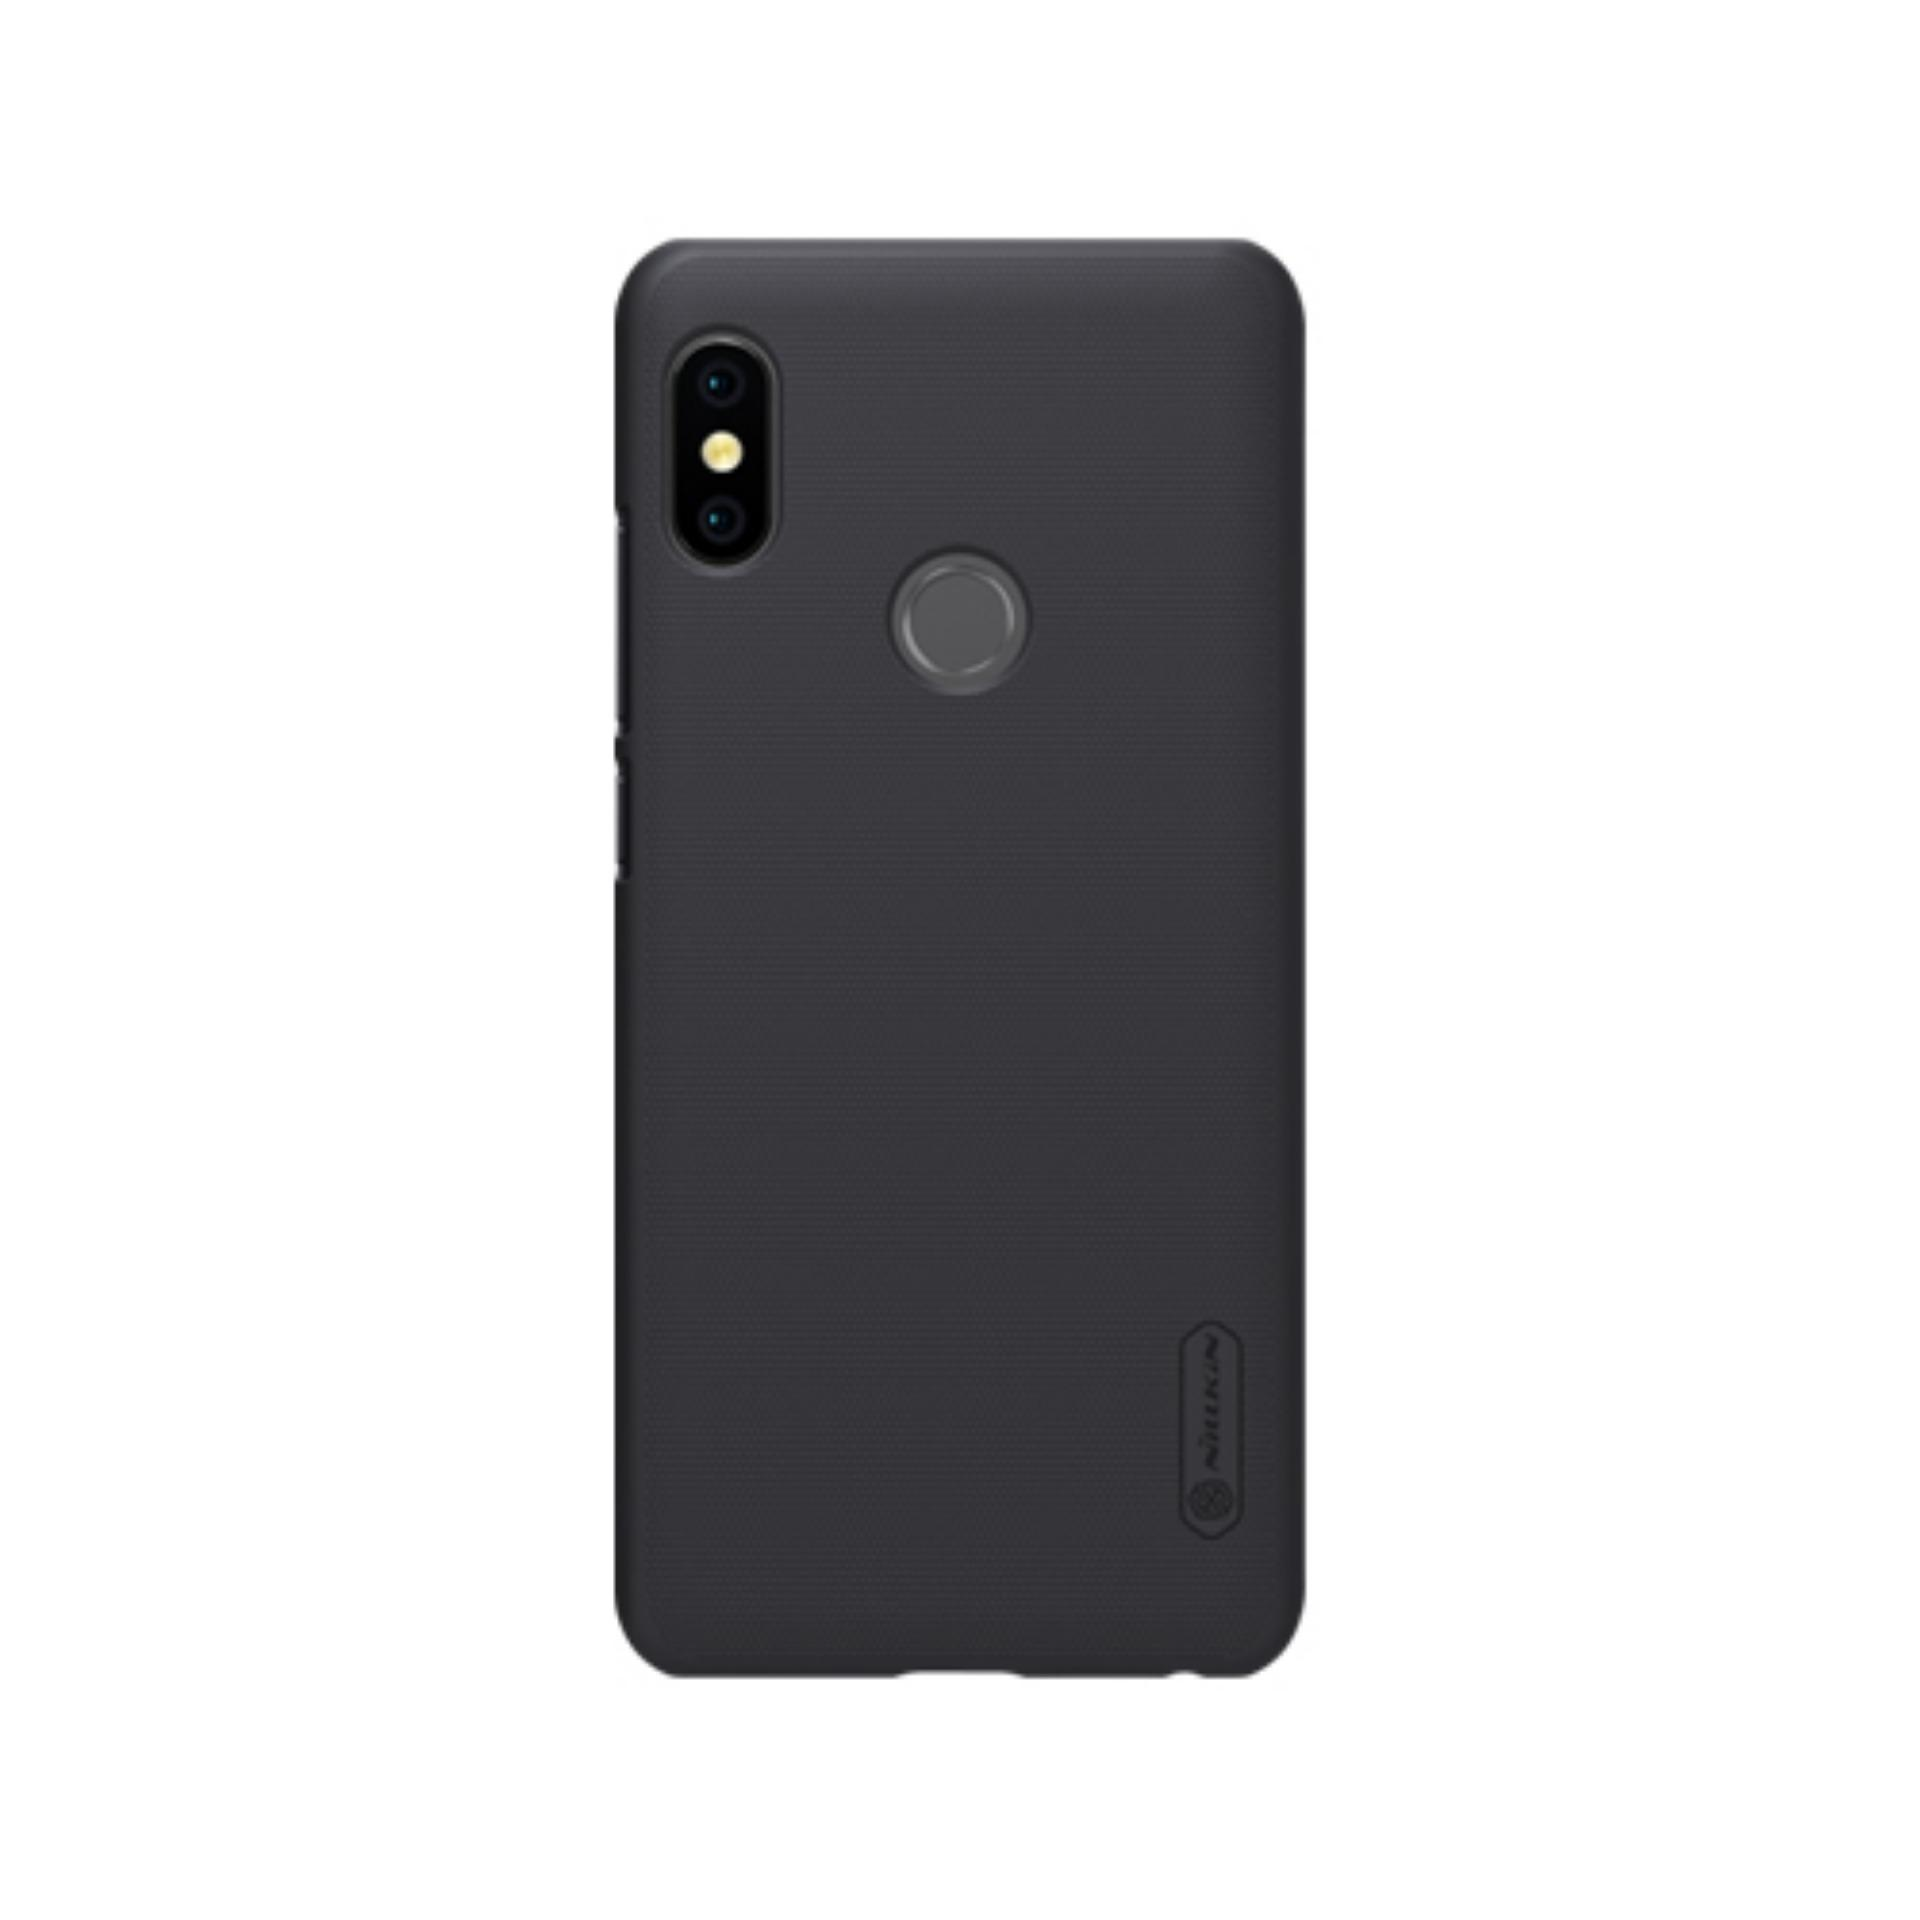 Nillkin ORIGINAL Super Frosted Shield Xiaomi Redmi Note 5 Pro - Black/Hitam Hardcase Backcase Backcover Case HP Casing Handphone